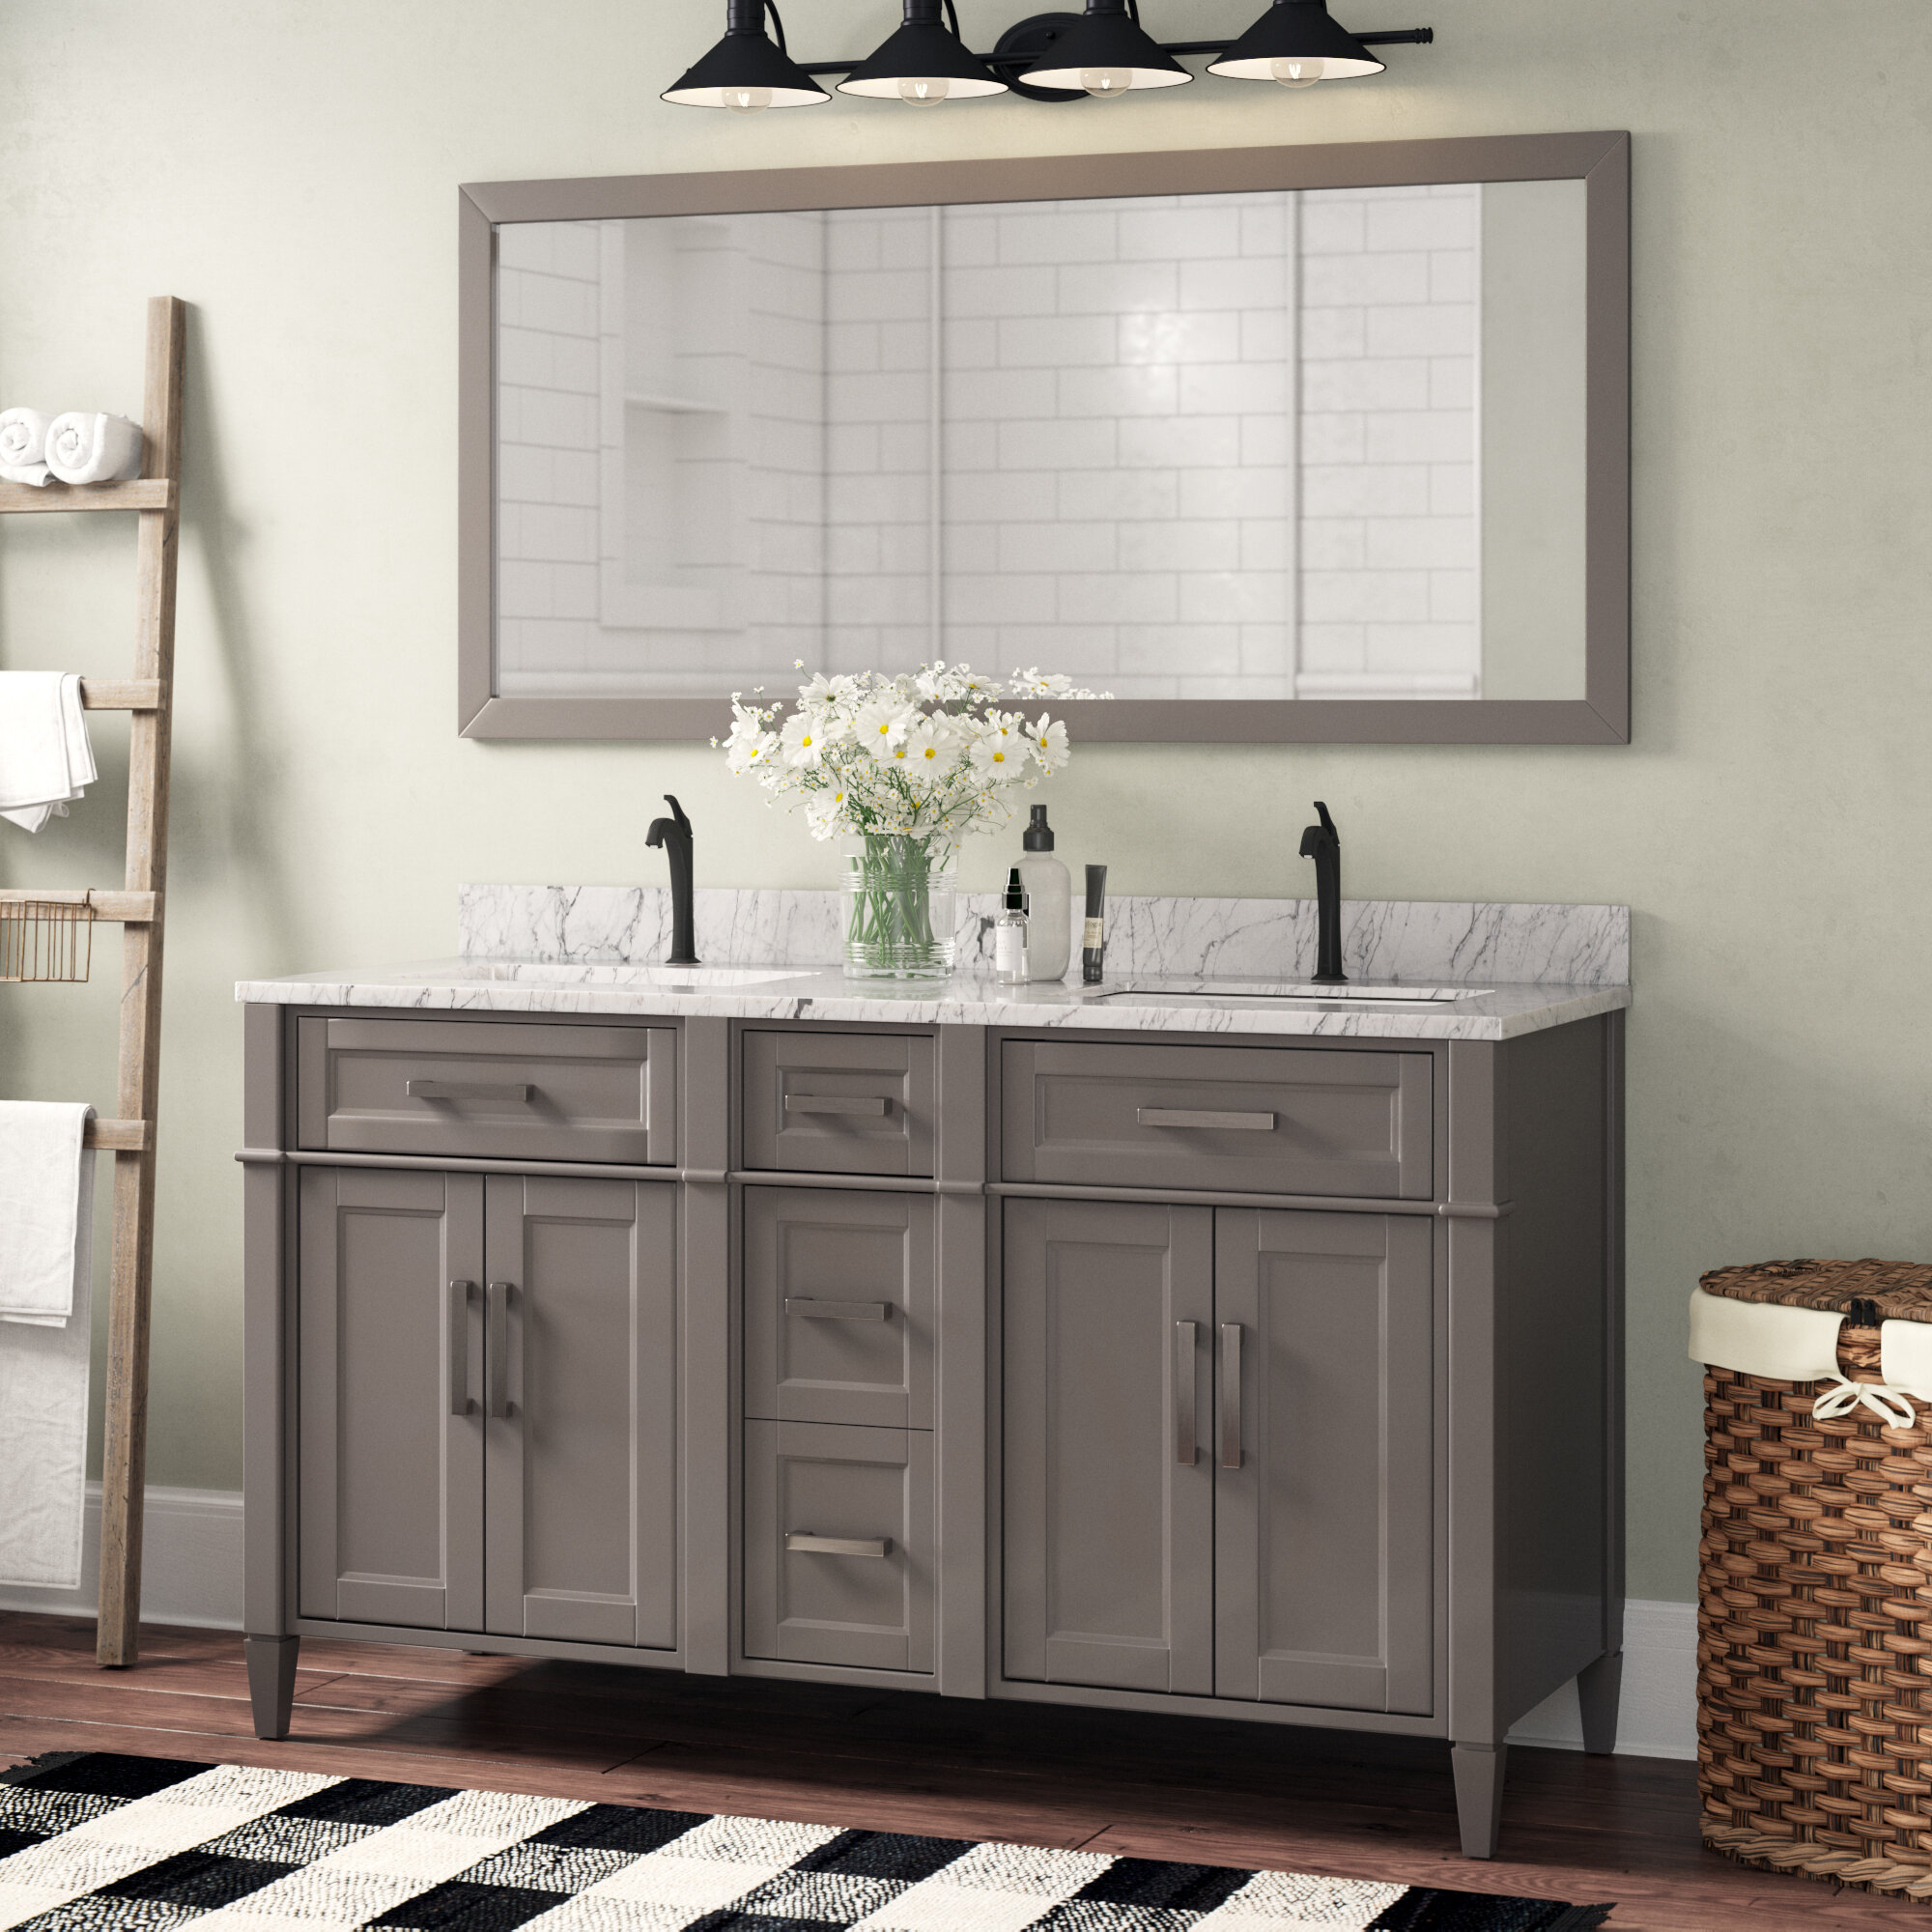 Gracie Oaks Monadnock 59 8 Double Bathroom Vanity Set With Mirror Reviews Wayfair